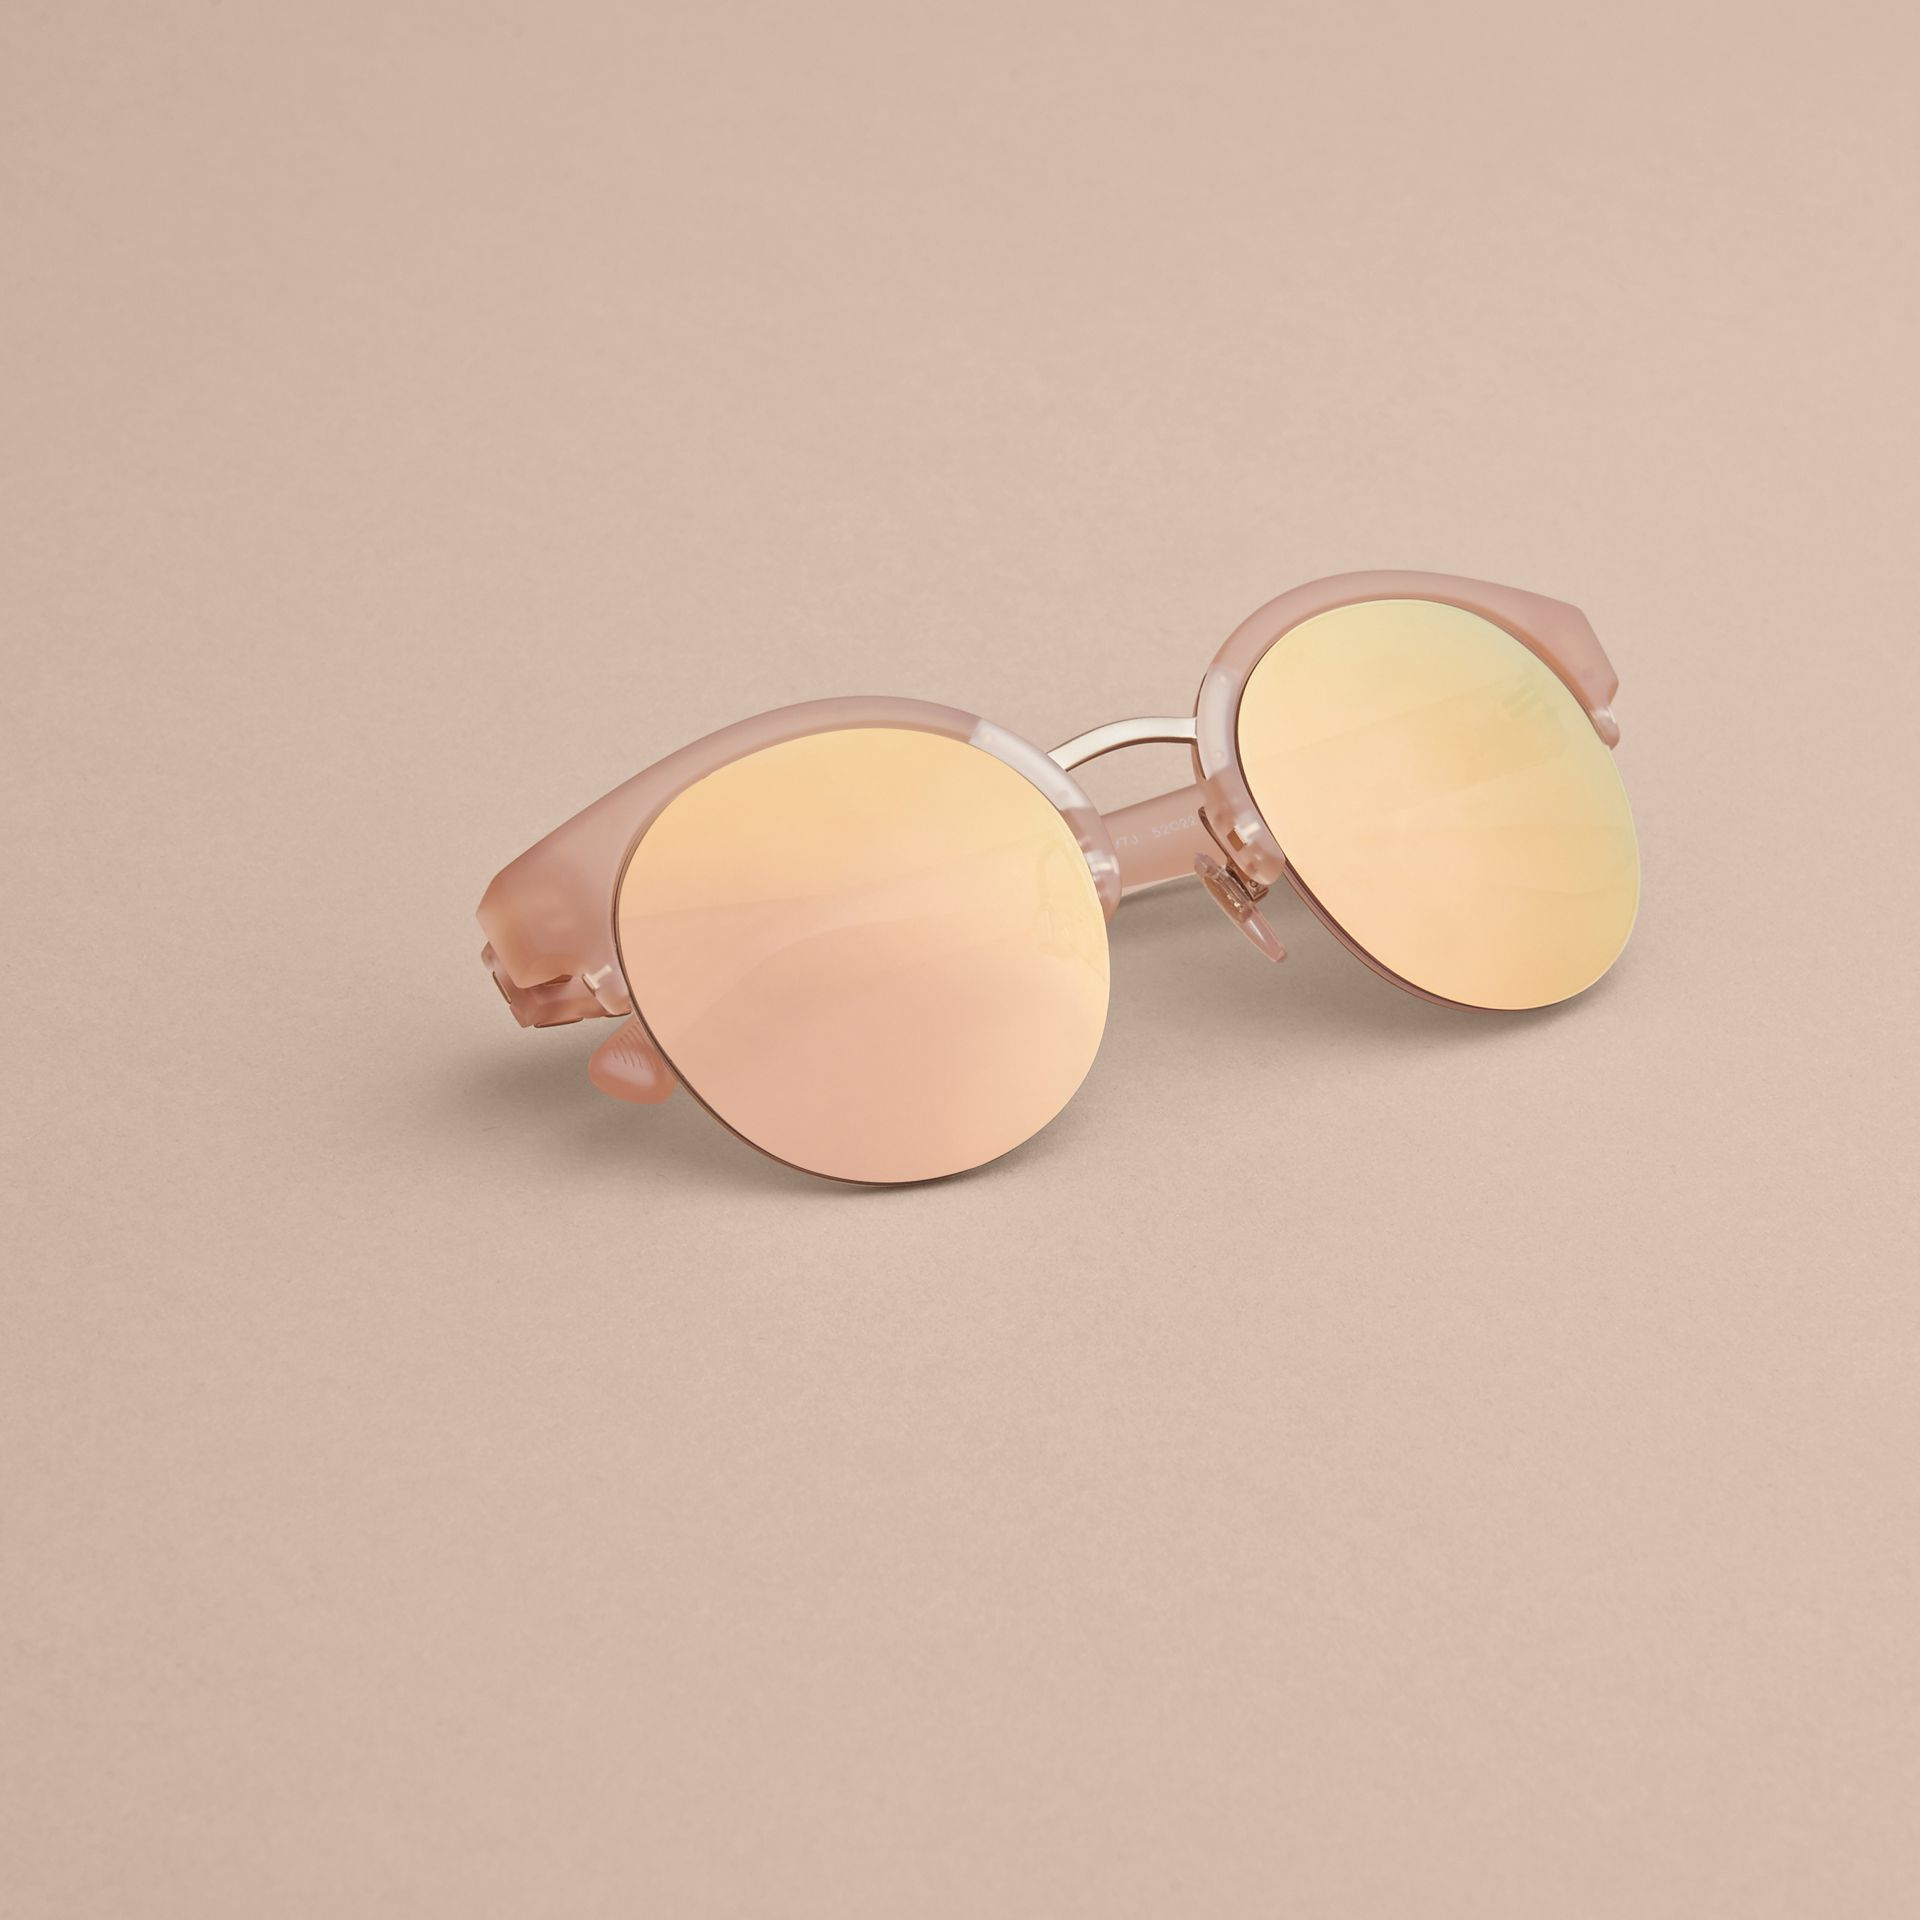 Check Detail Round Half-frame Sunglasses in Nude - Women | Burberry - gallery image 5